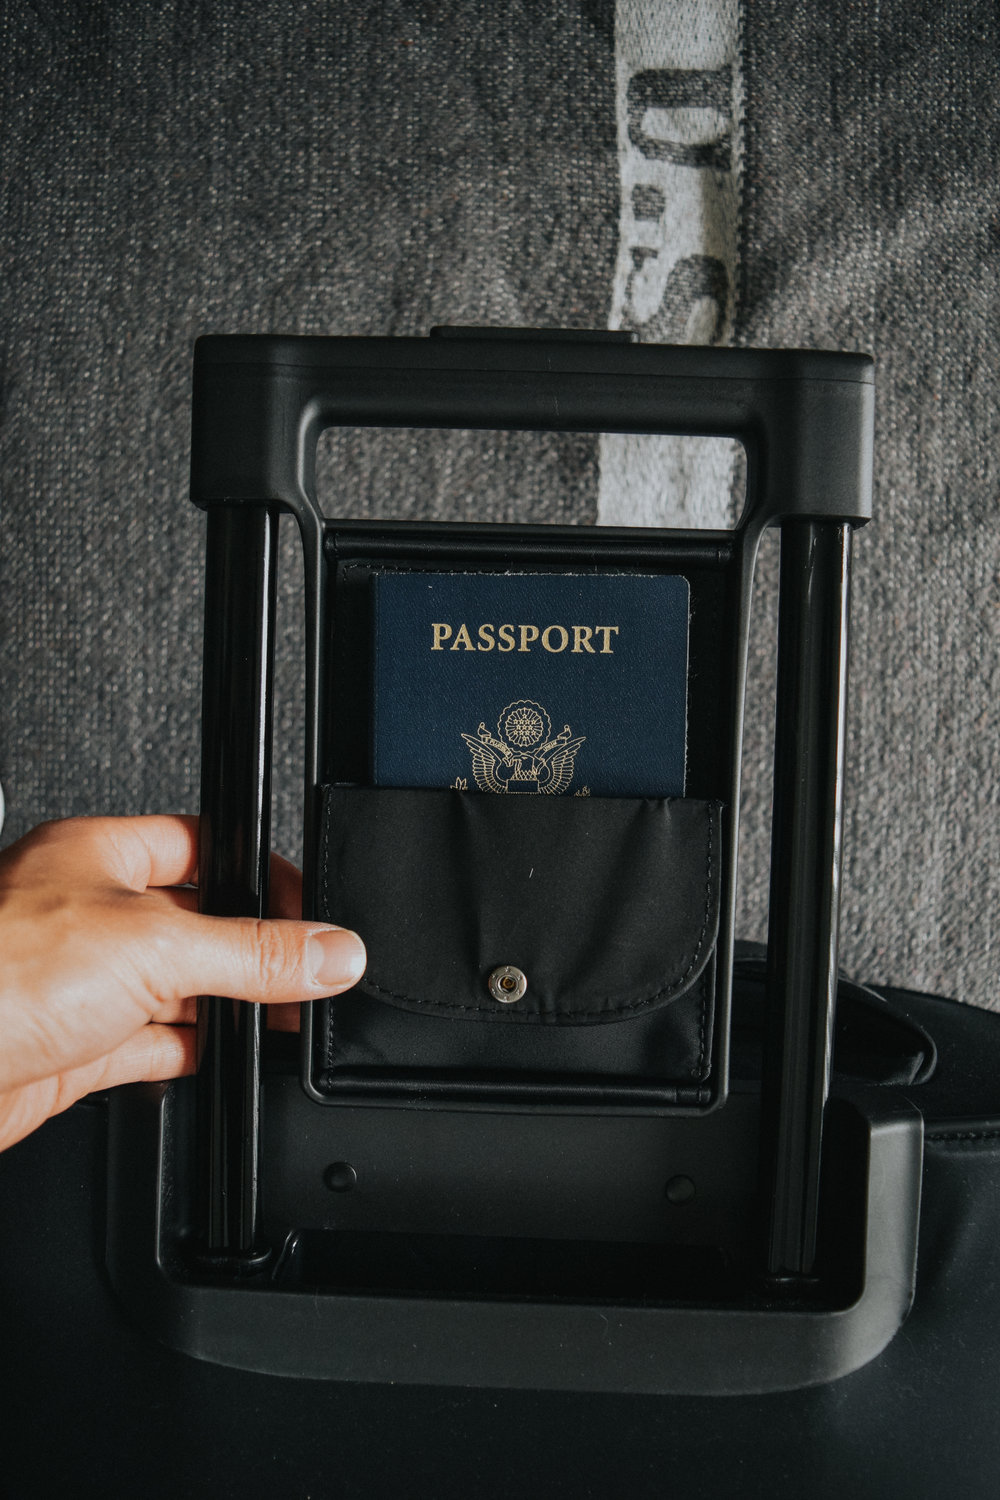 Quick access to passport or credit cards